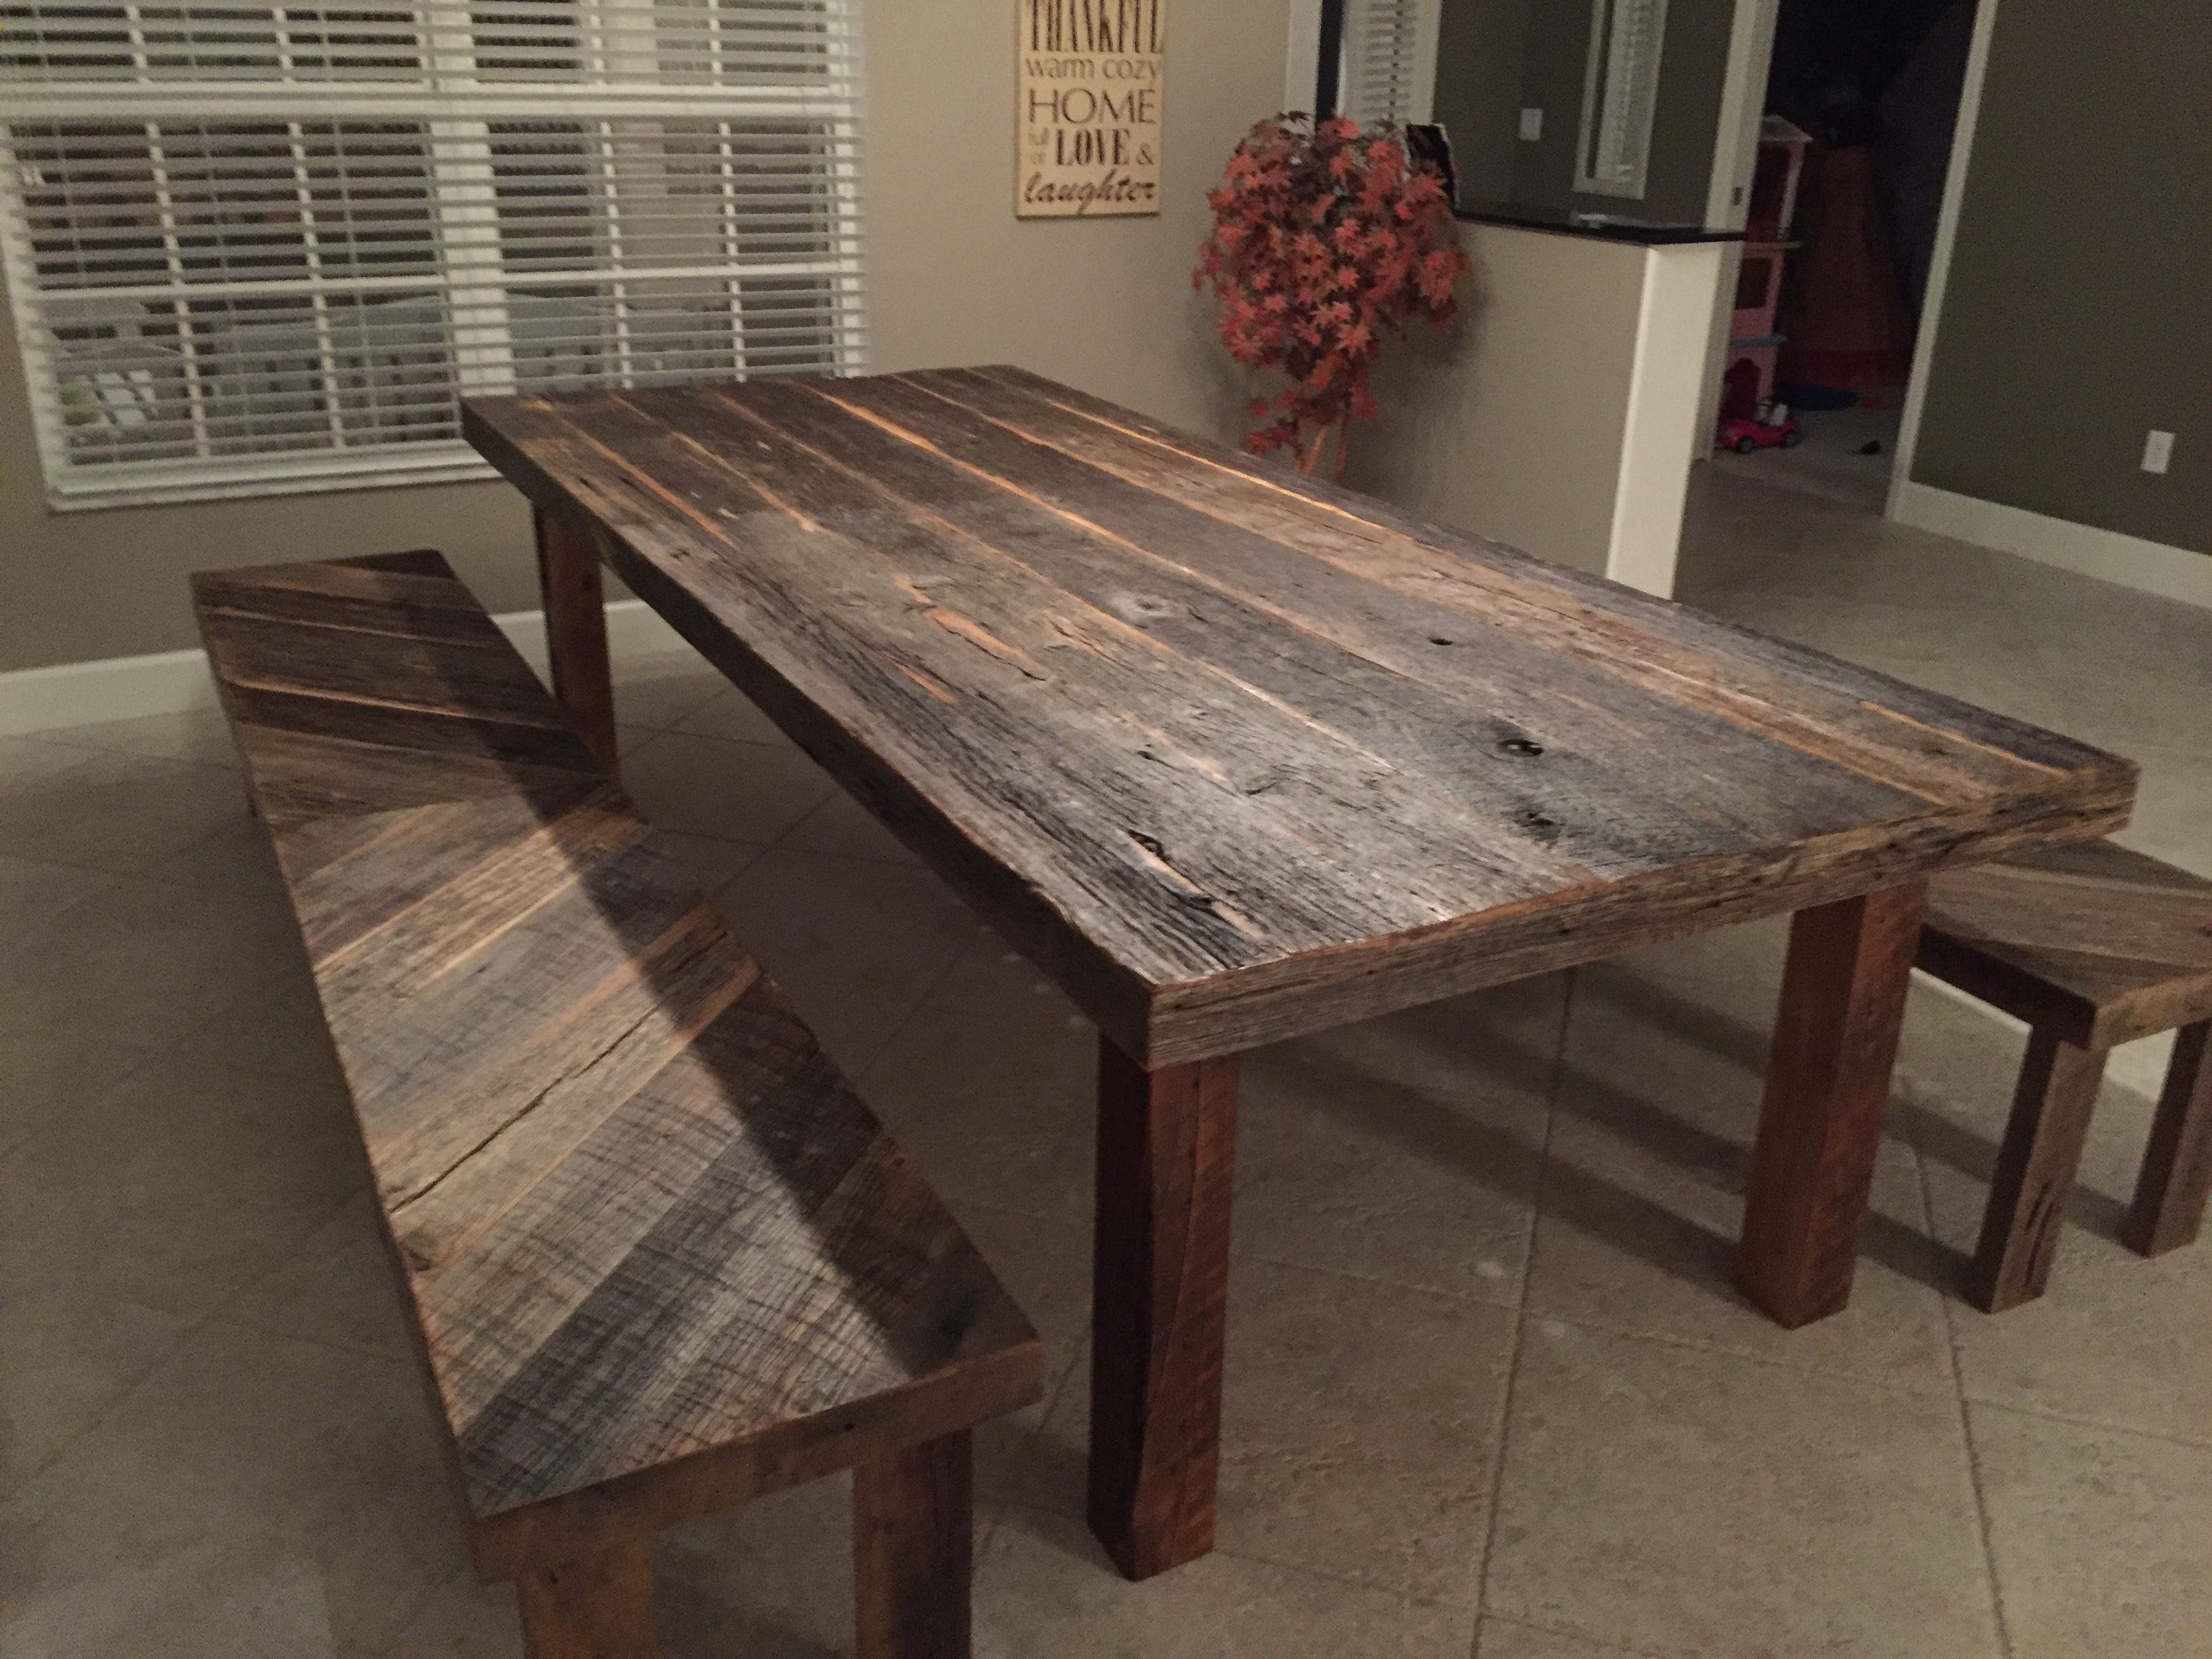 Stacys Rustic Reclaimed Wood Dining Table with Matching